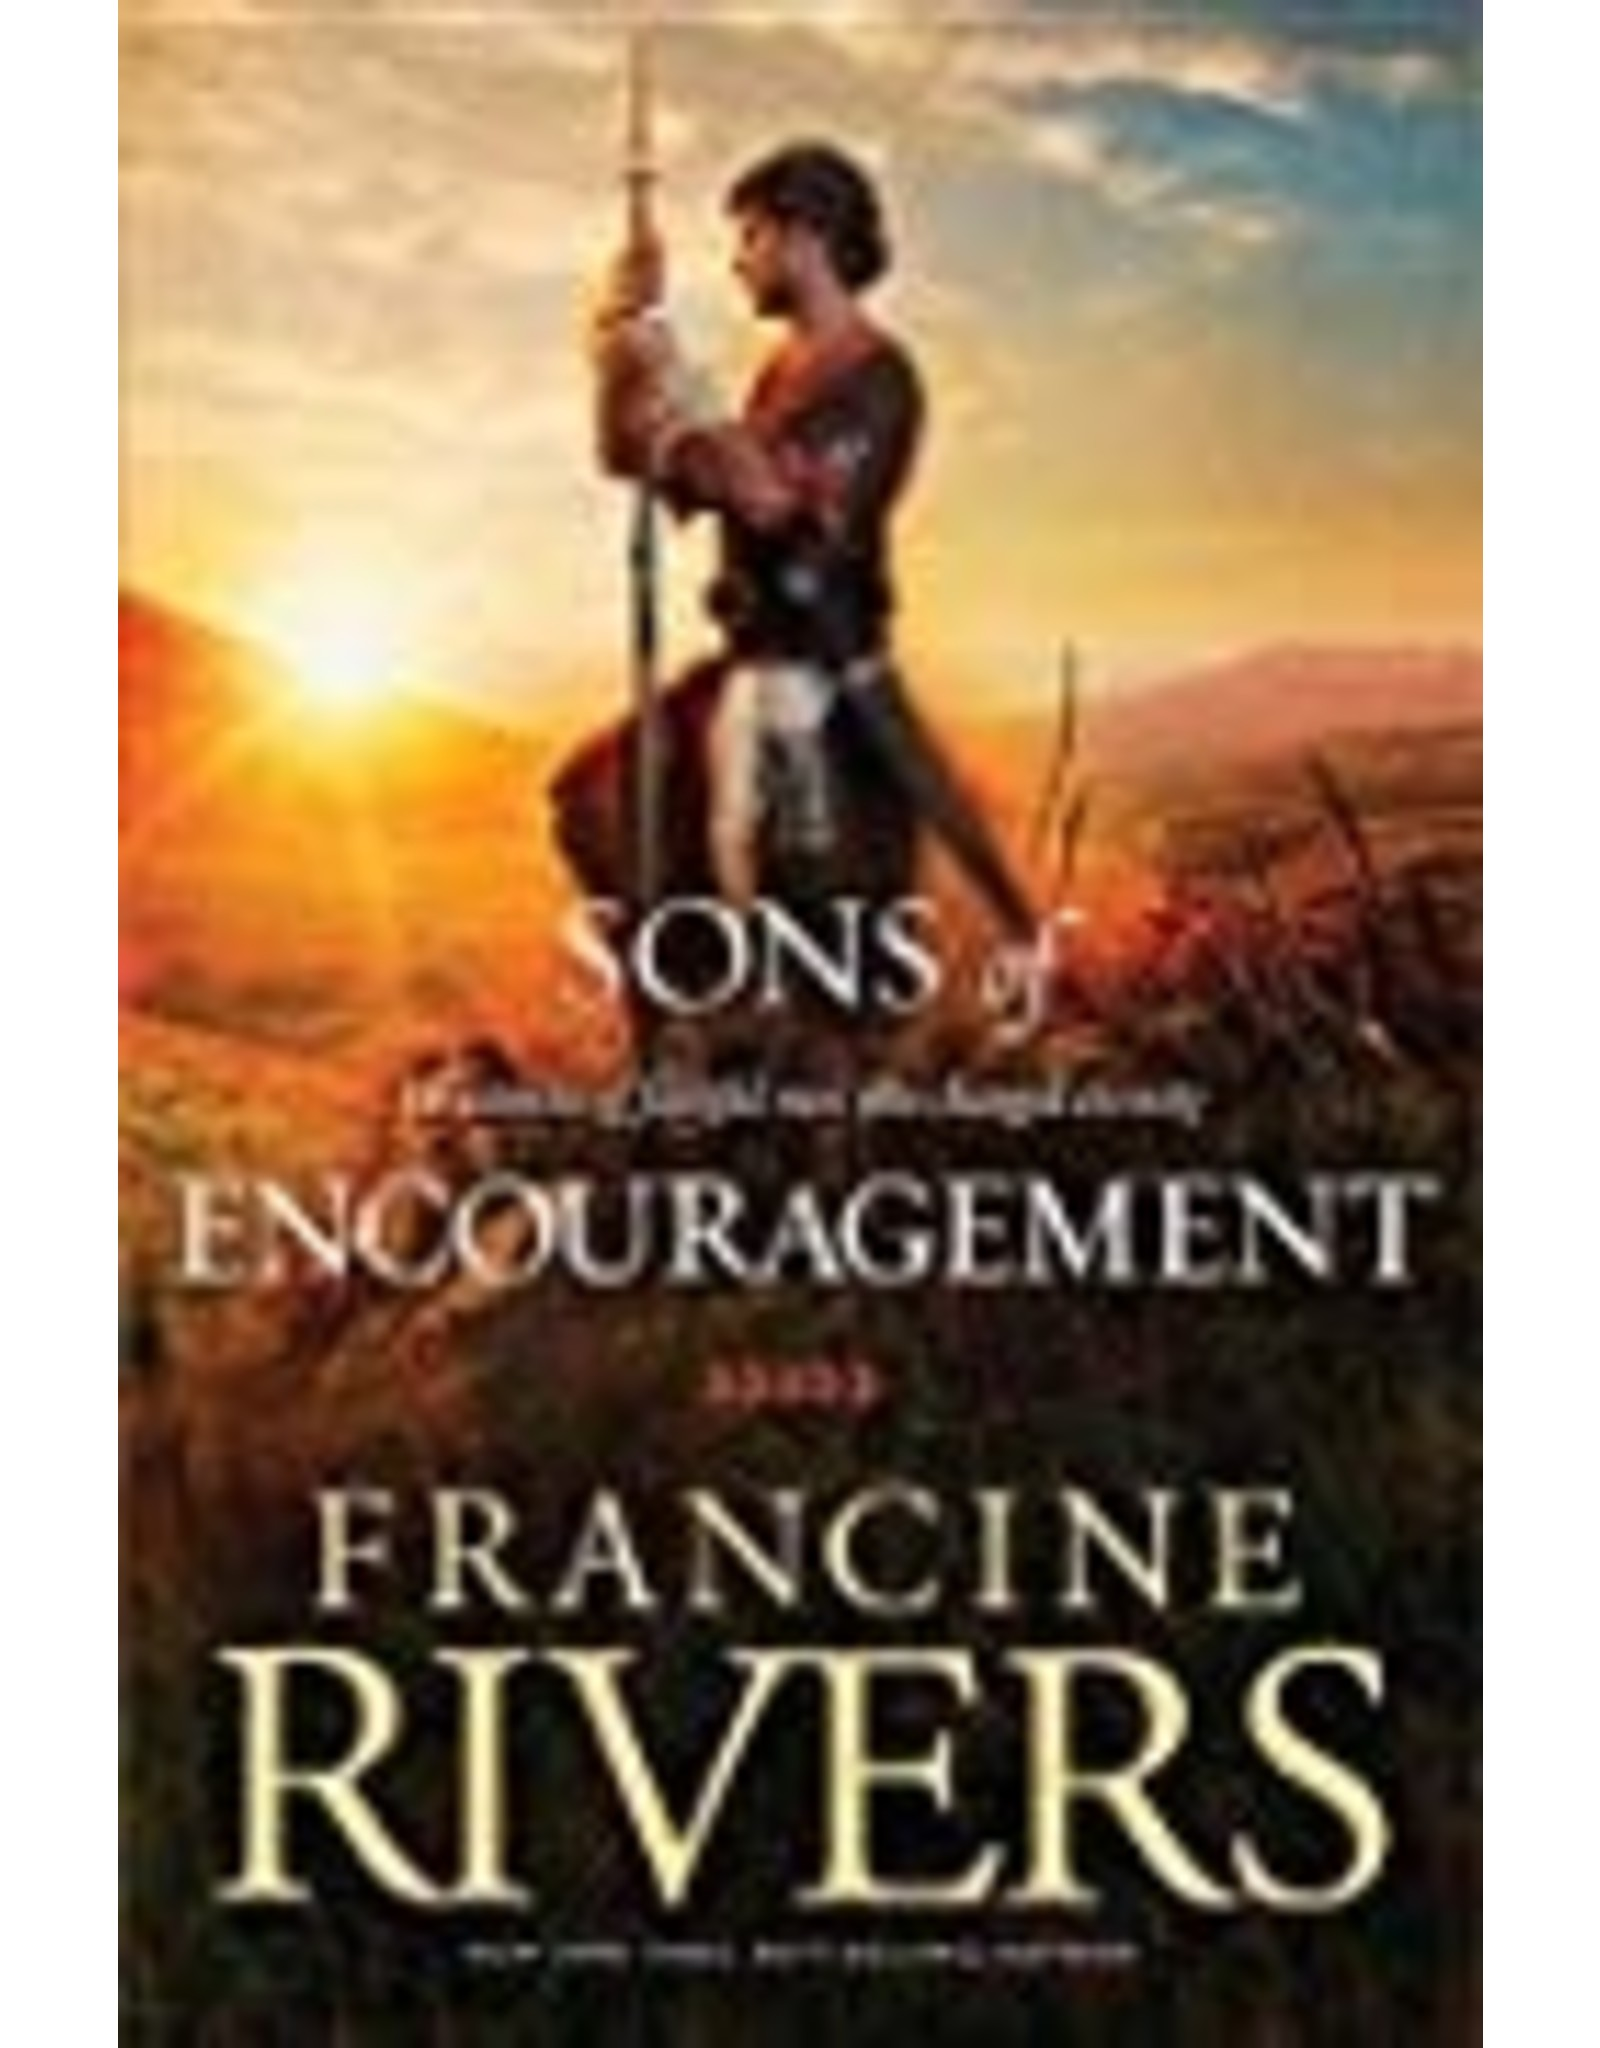 Rivers Sons of Encouragement